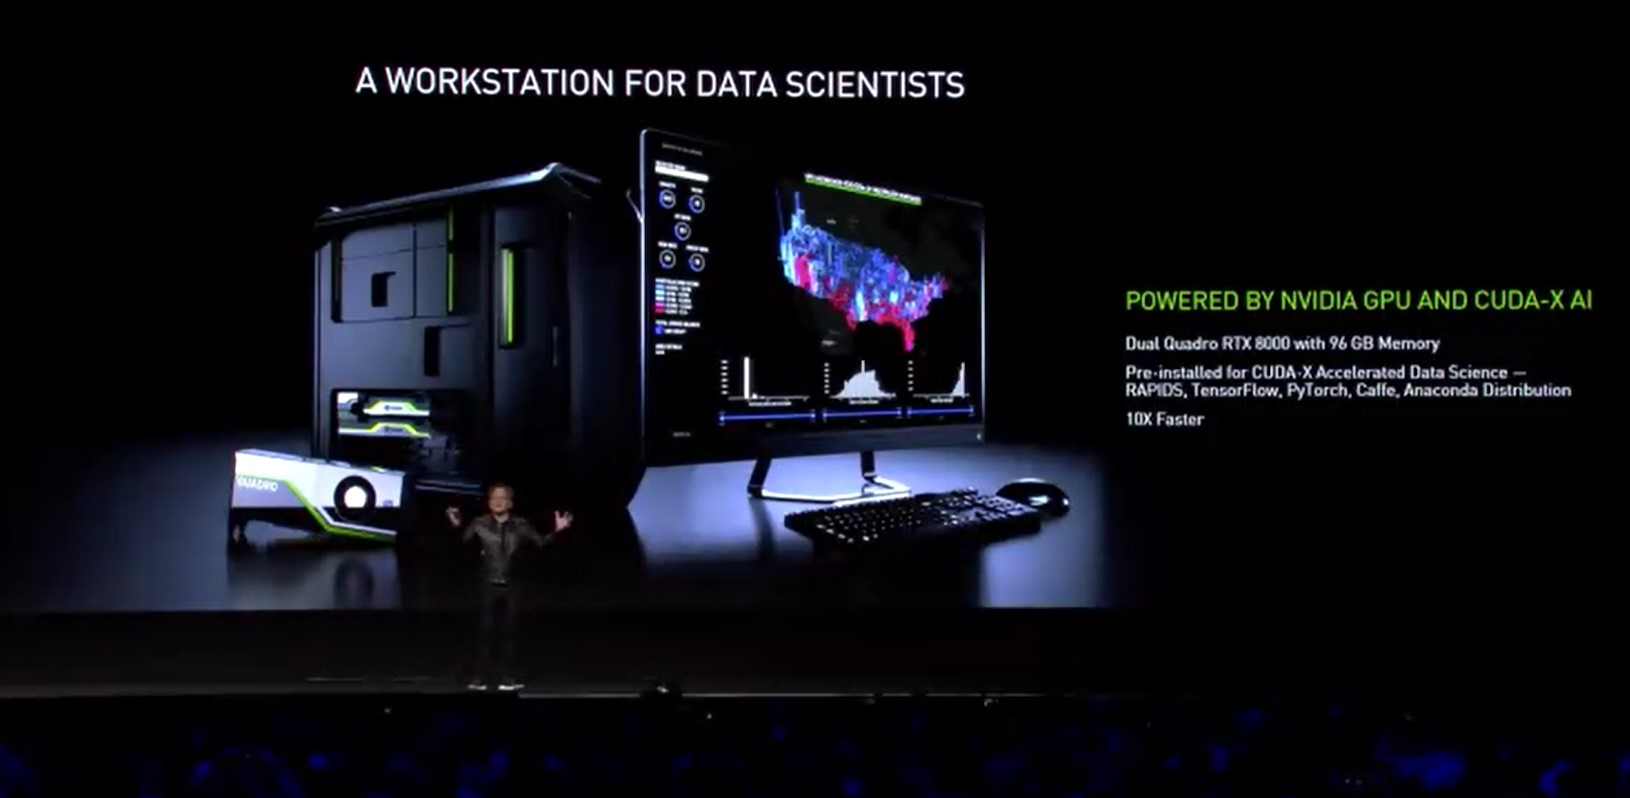 Live From Gtc A New Data Science Workstation Powered By Nvidia Quadro Rtx